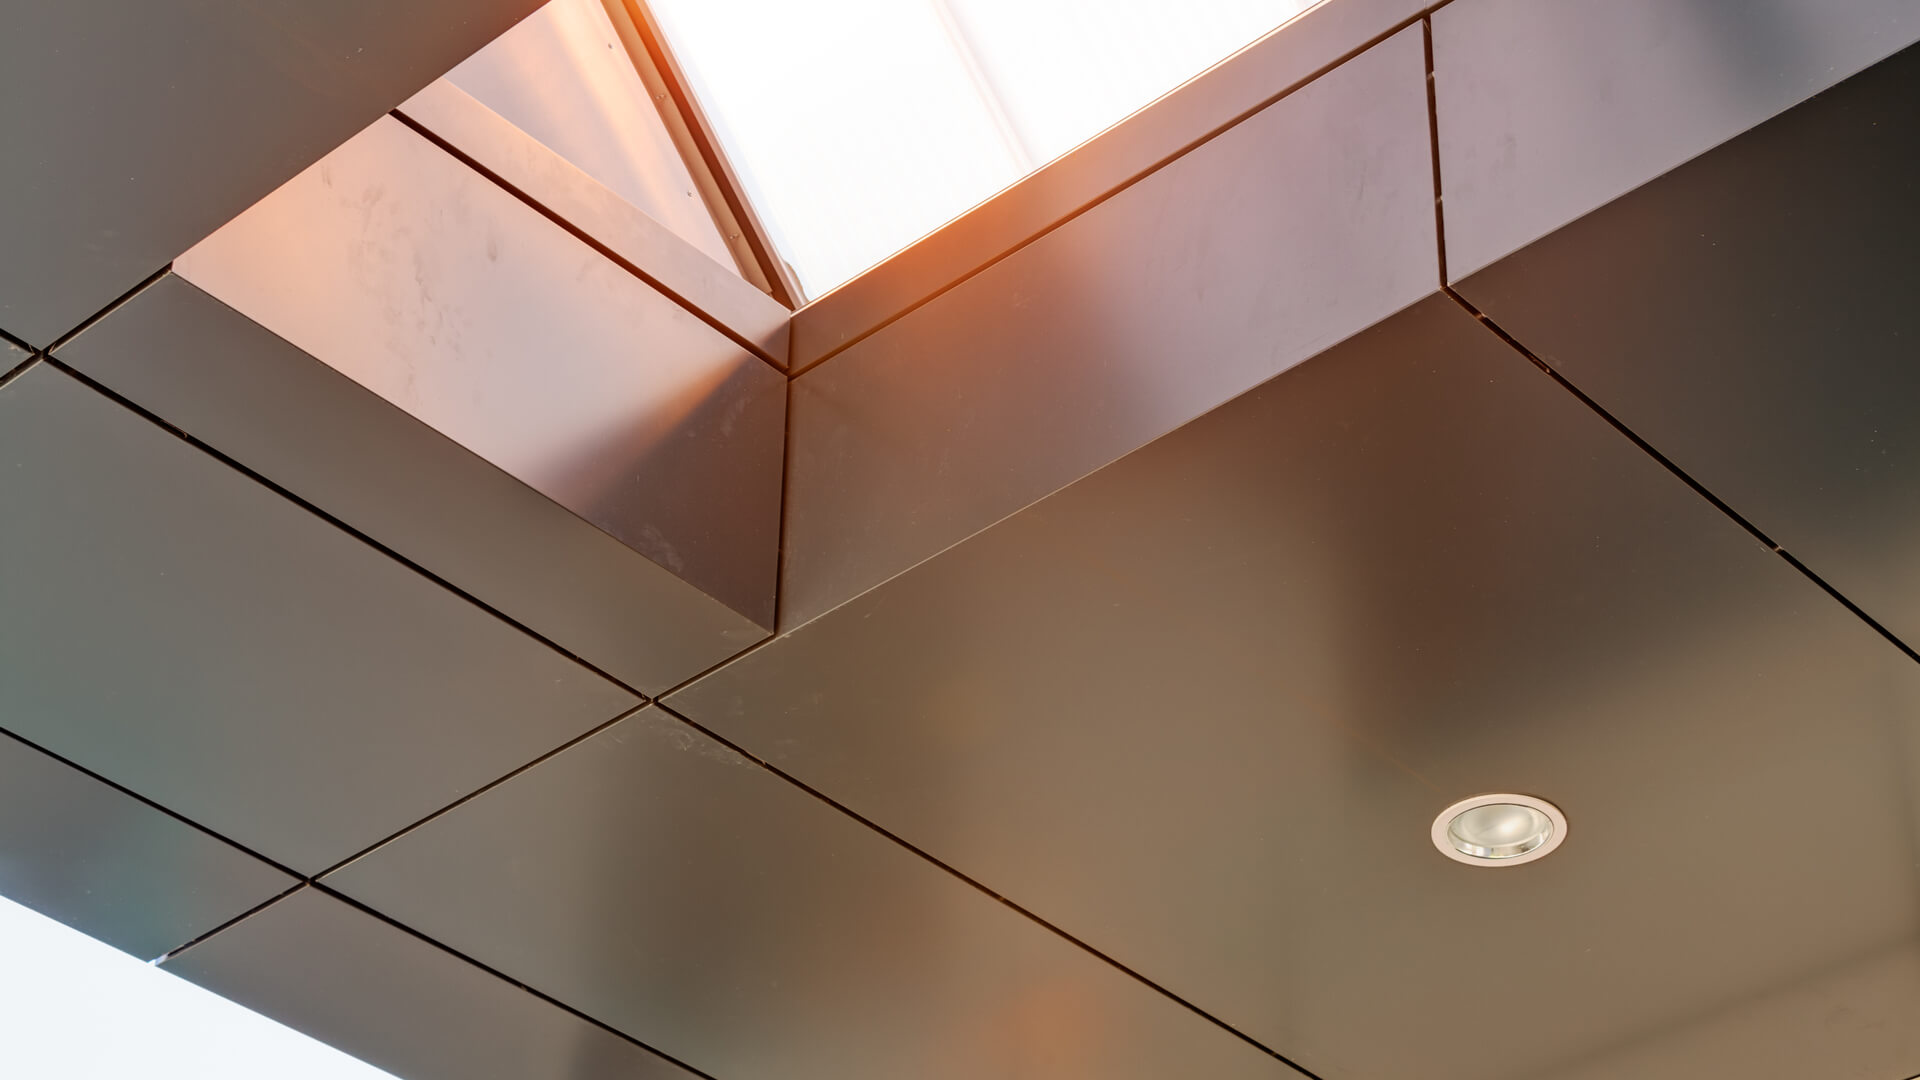 Aluminium panels: types, properties, and quick tips to choose